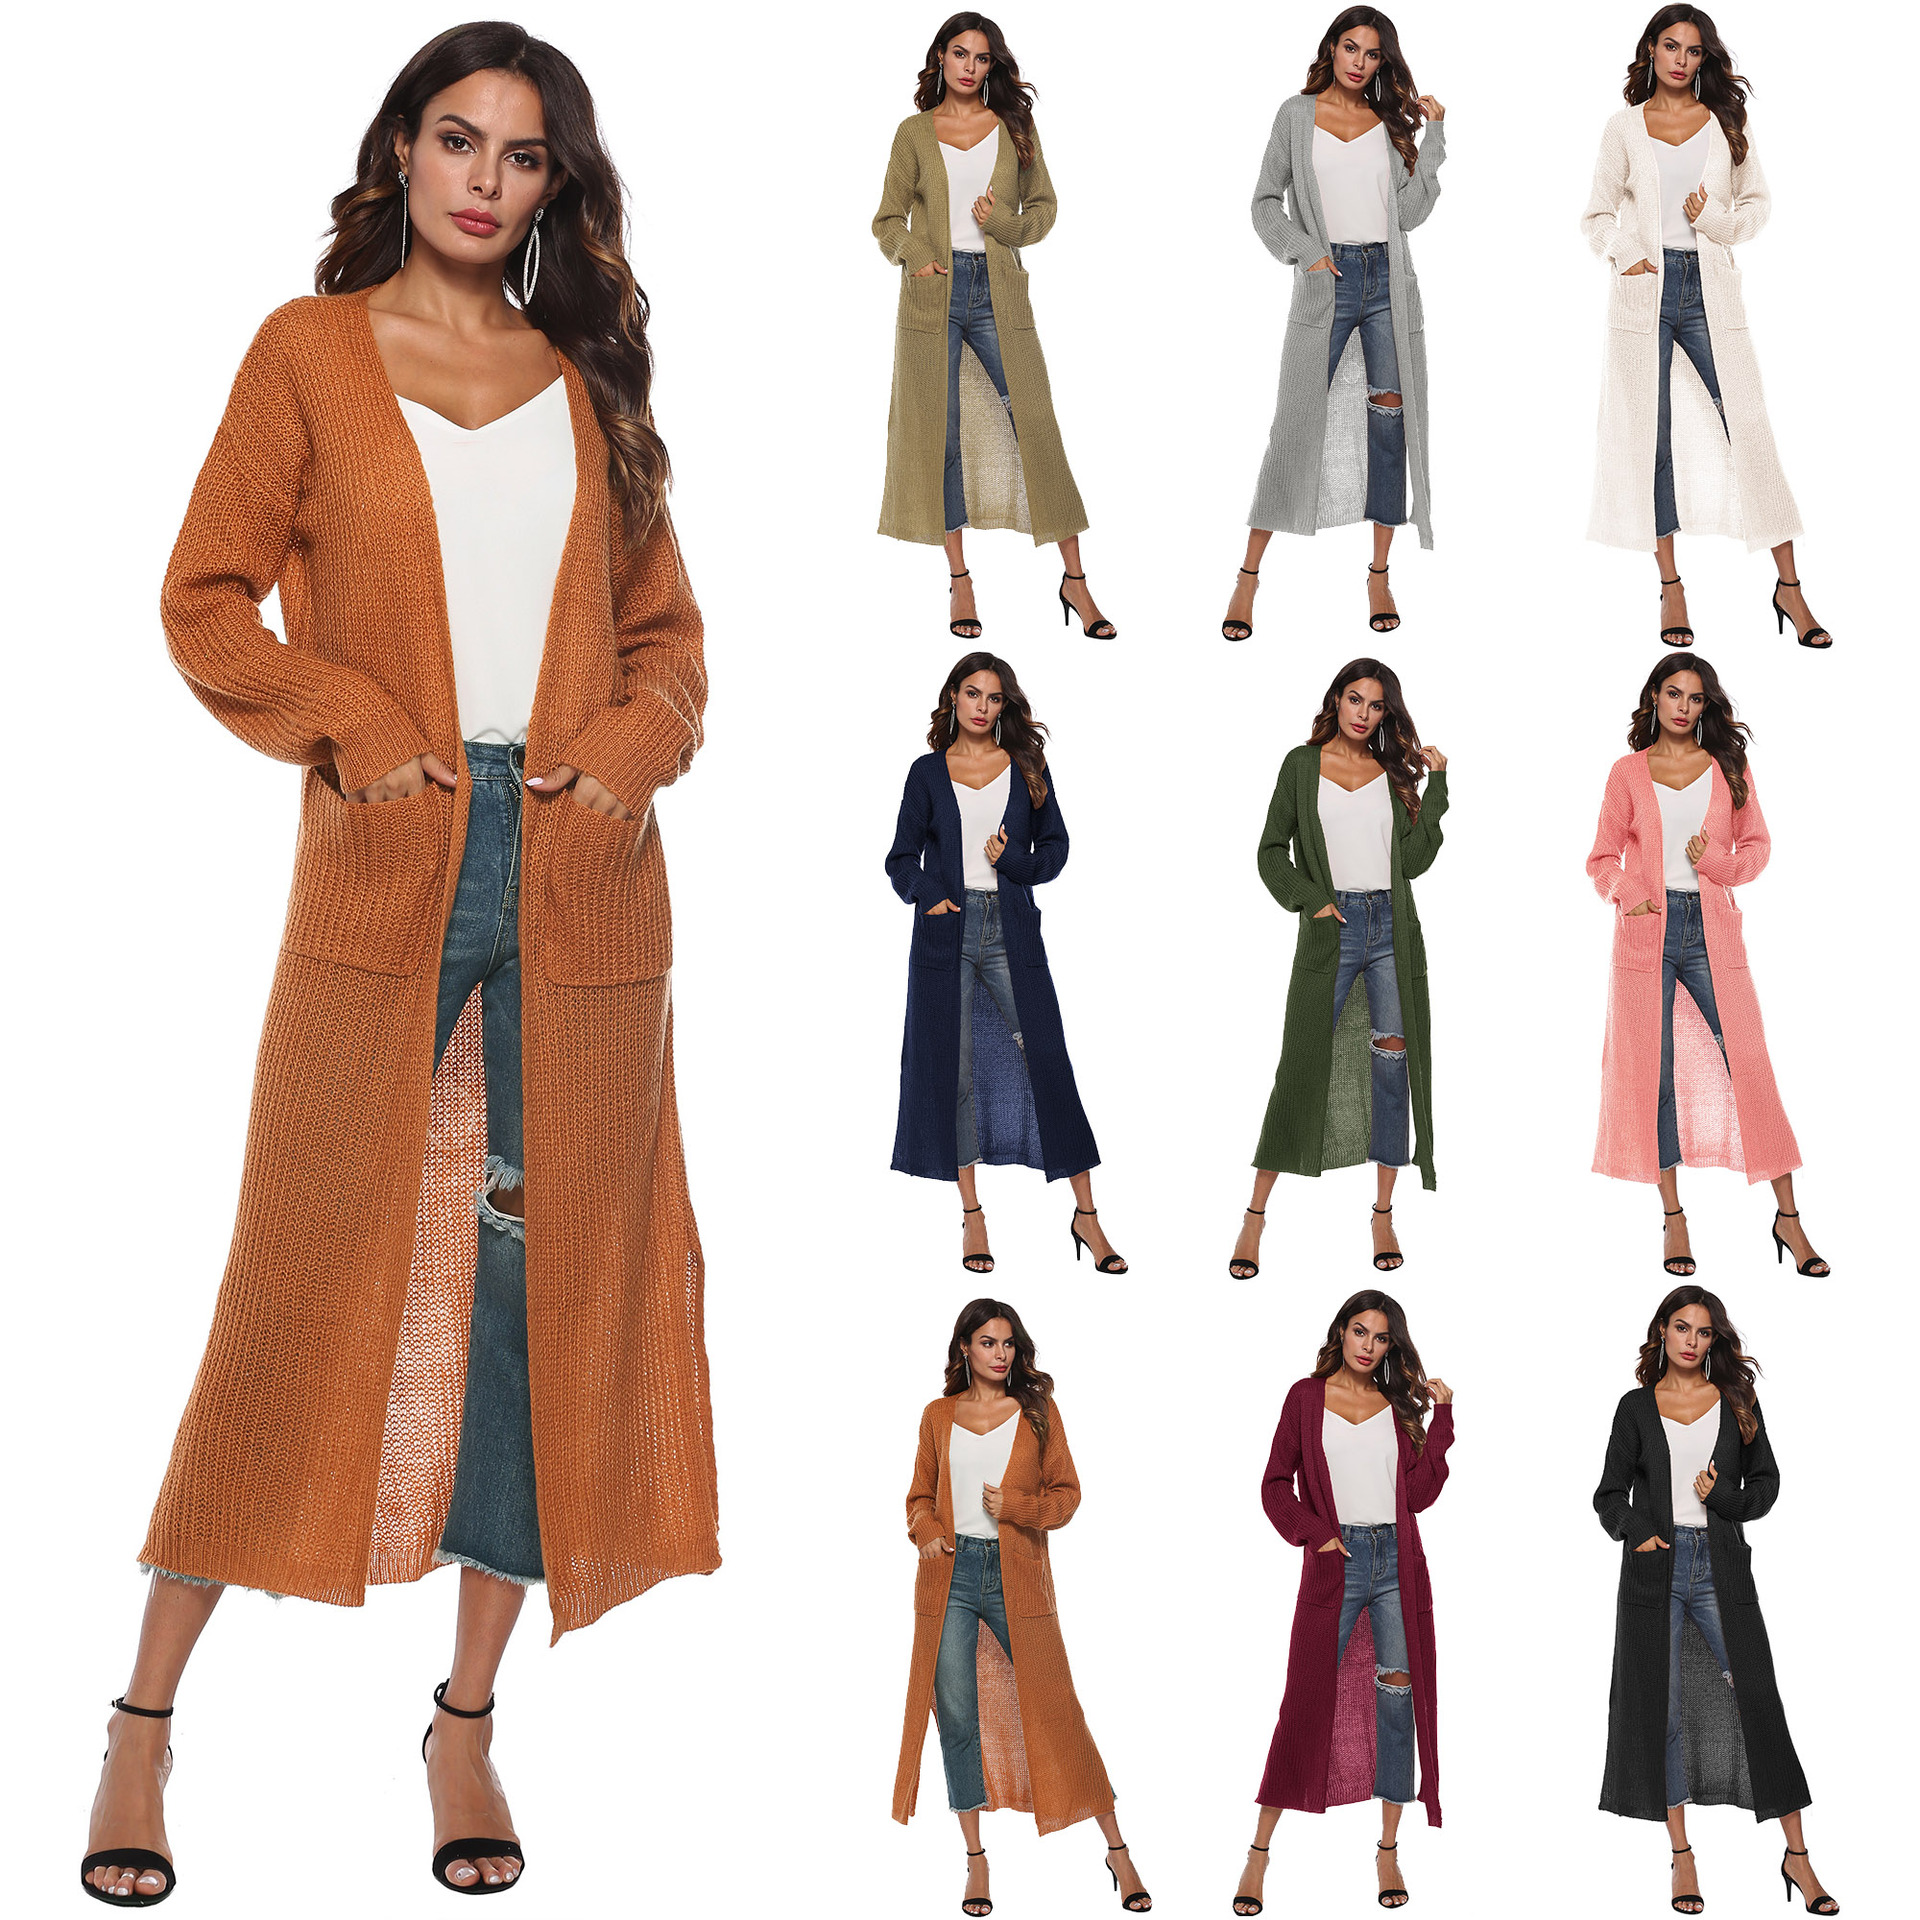 2020 Fashion Women's Oversize Sweater With Pocket Coat Long Sleeve Knitted Cardigan Striped Sweater Coat